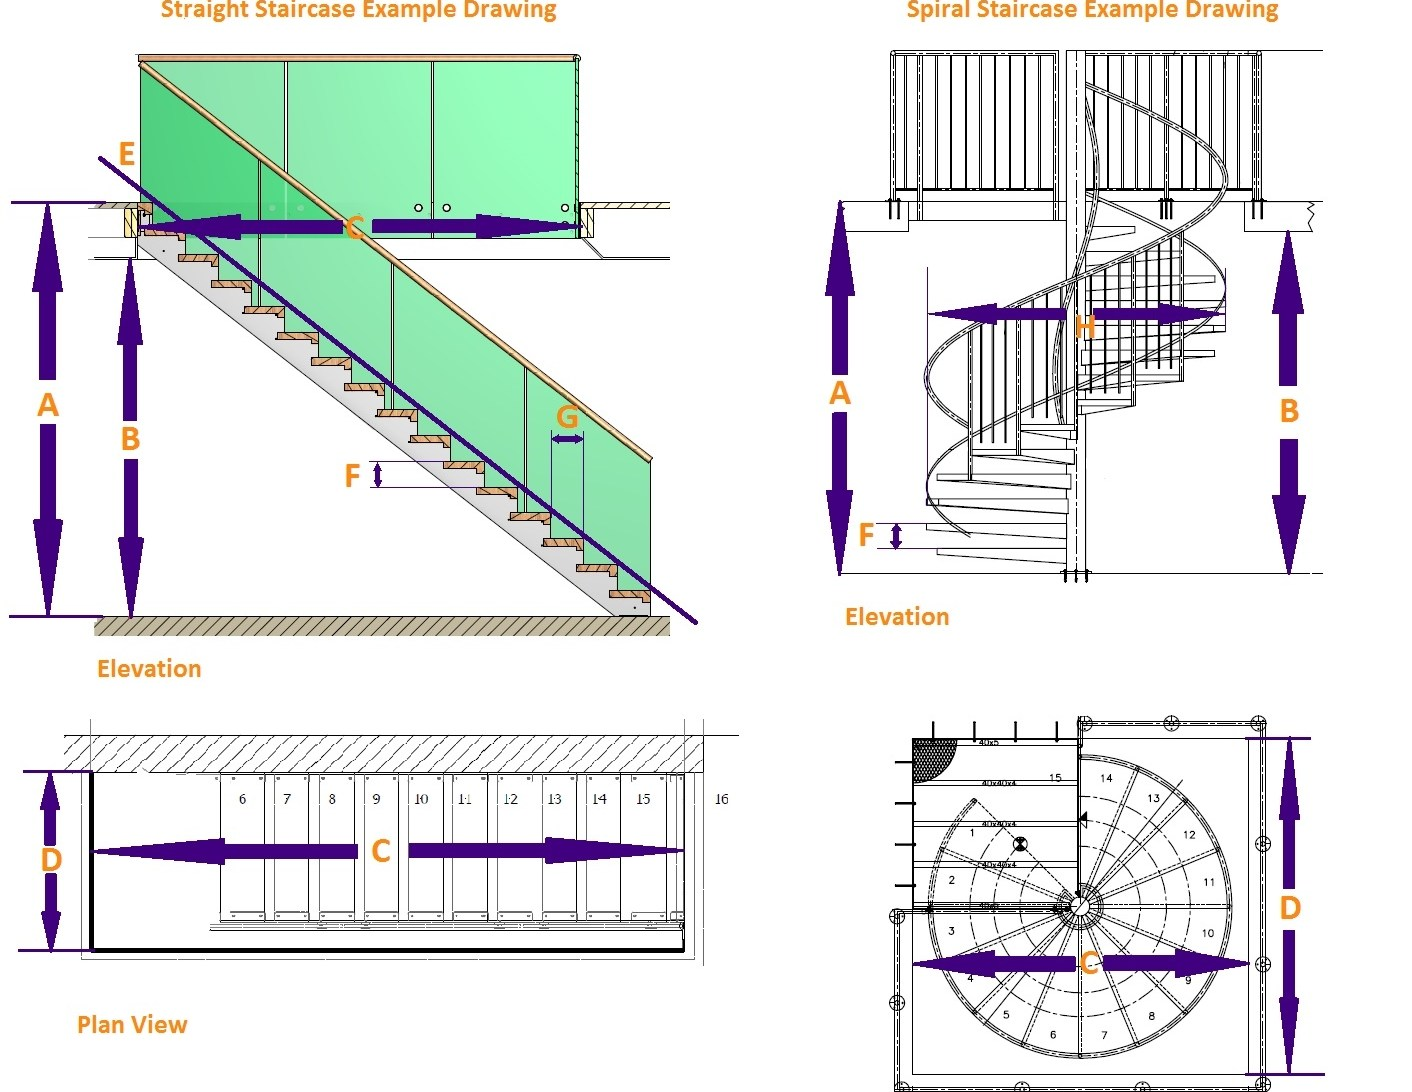 Staircase Information Spiral Staircases   Curved Staircase Design Plans   Building   House   Drawing   Outdoor   Indian Style